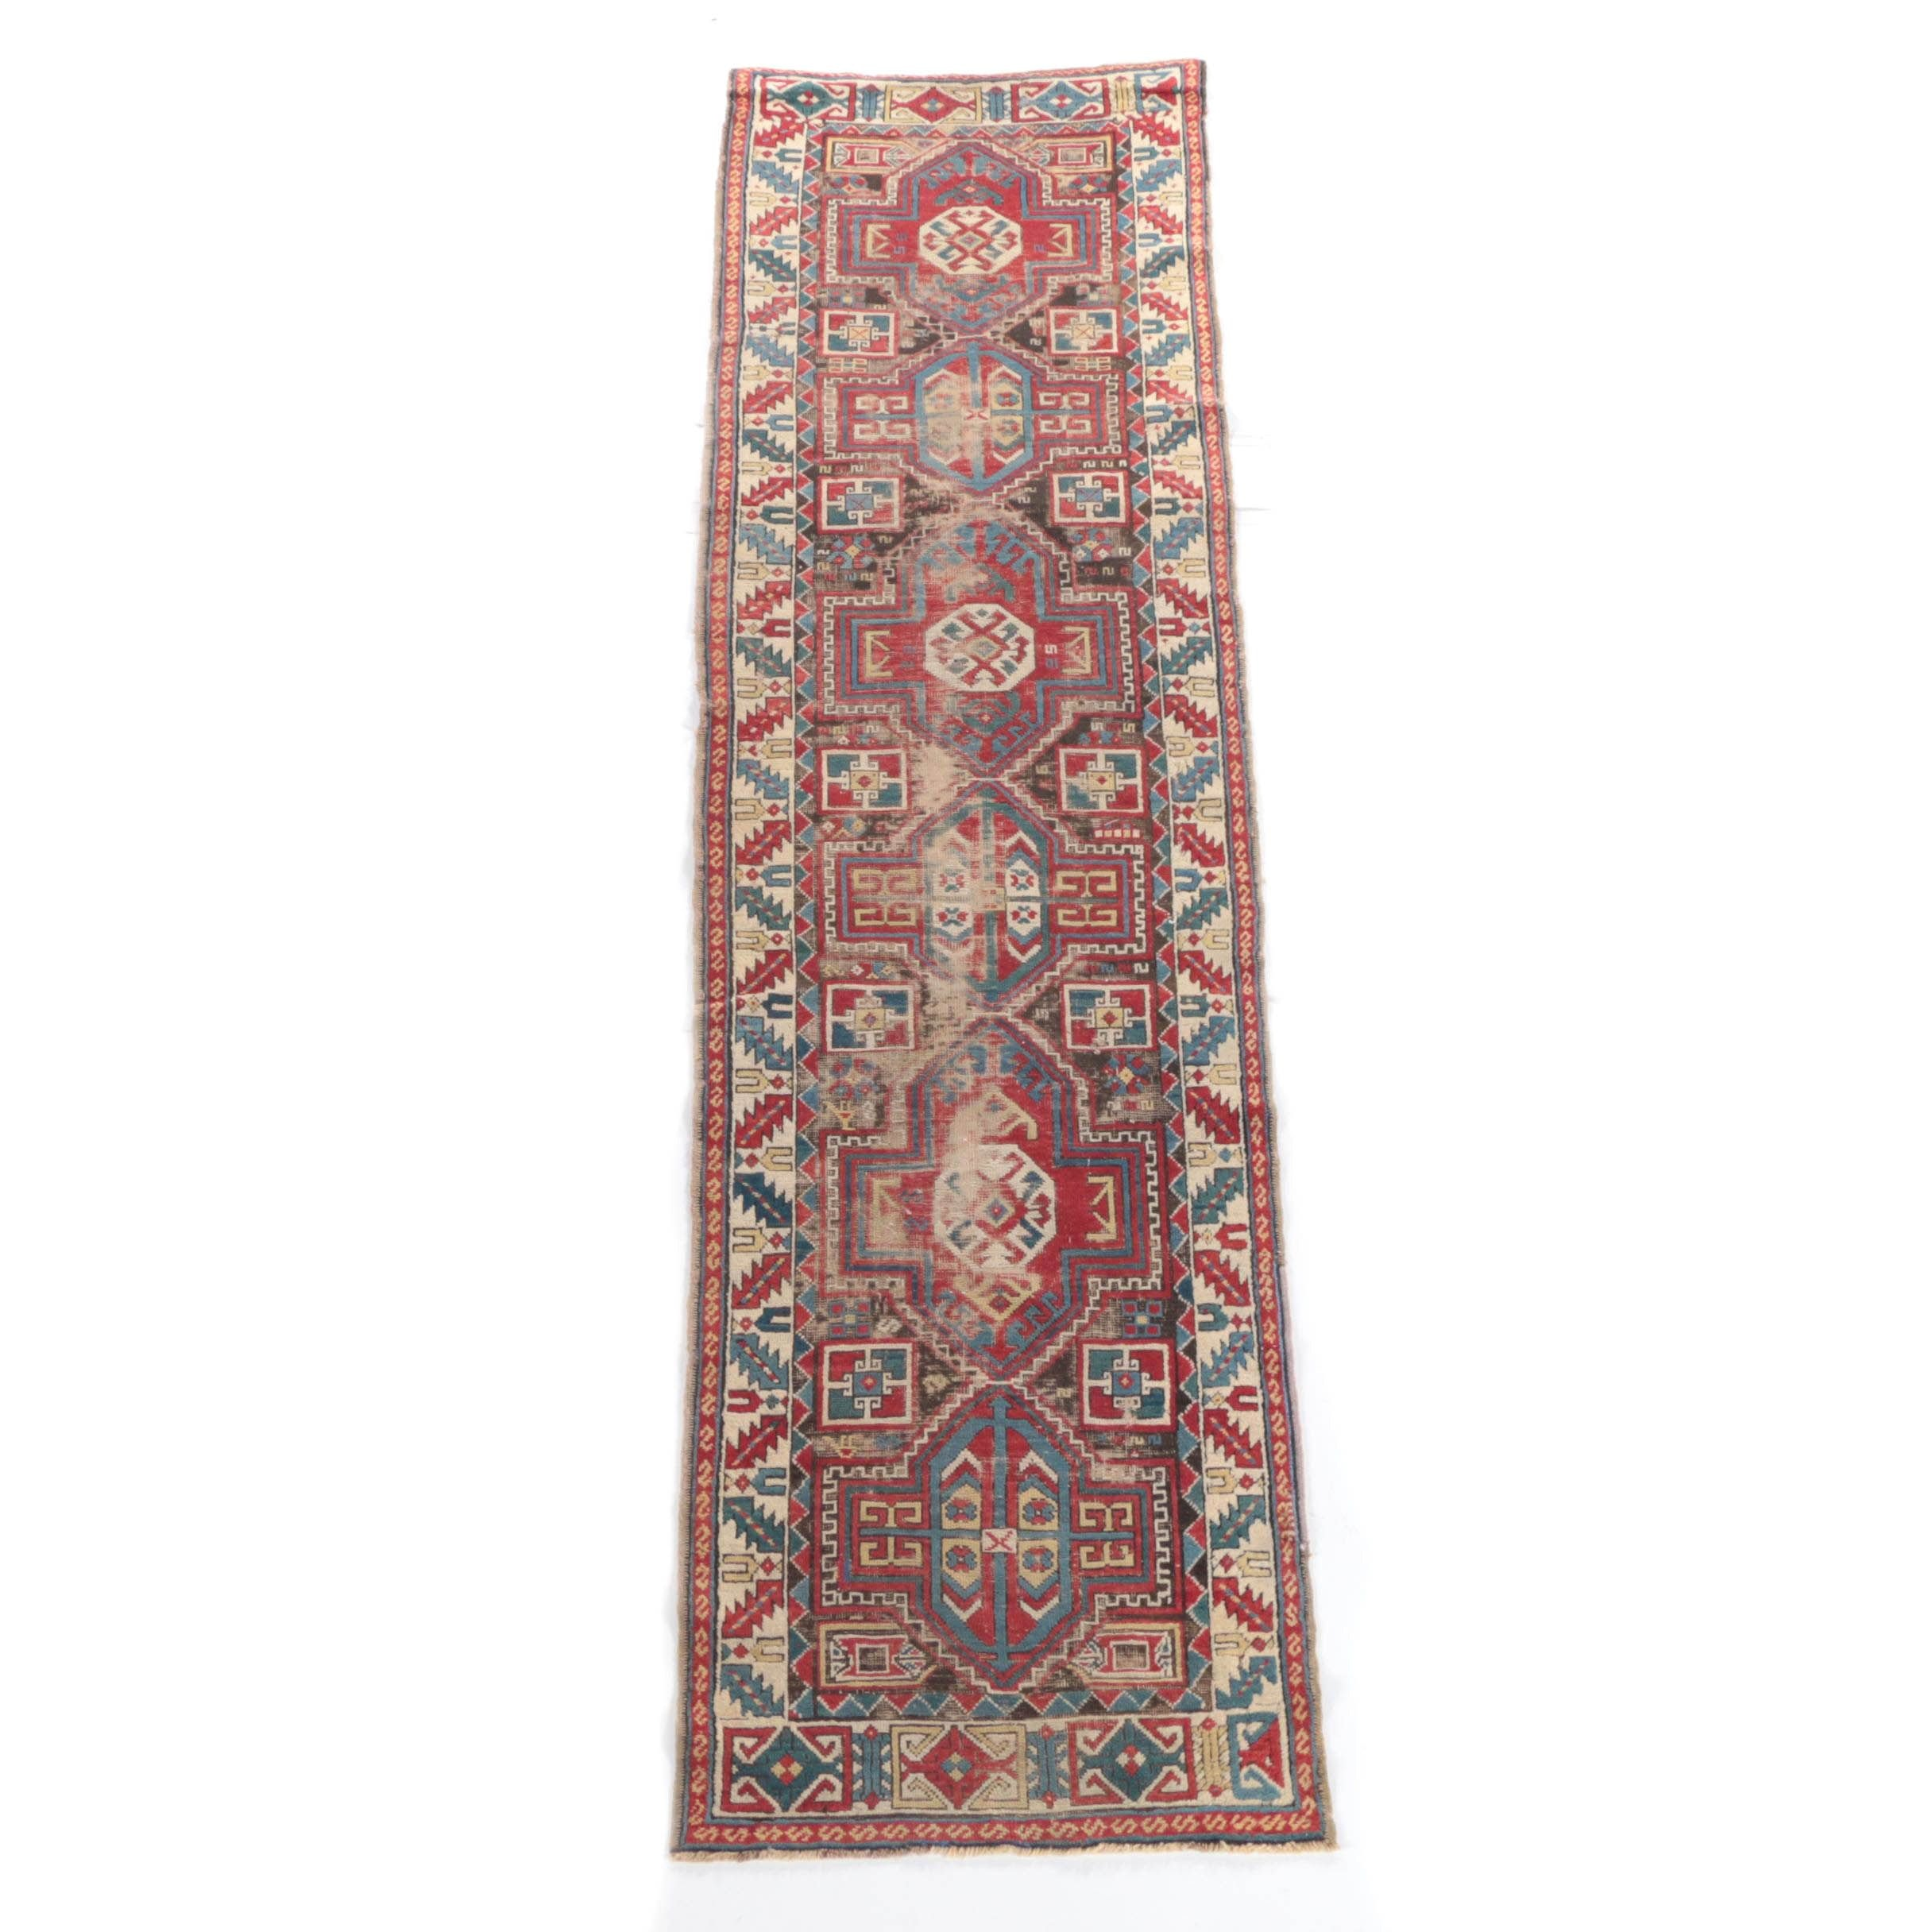 Antique Hand-Knotted Shirvan Wool Carpet Runner